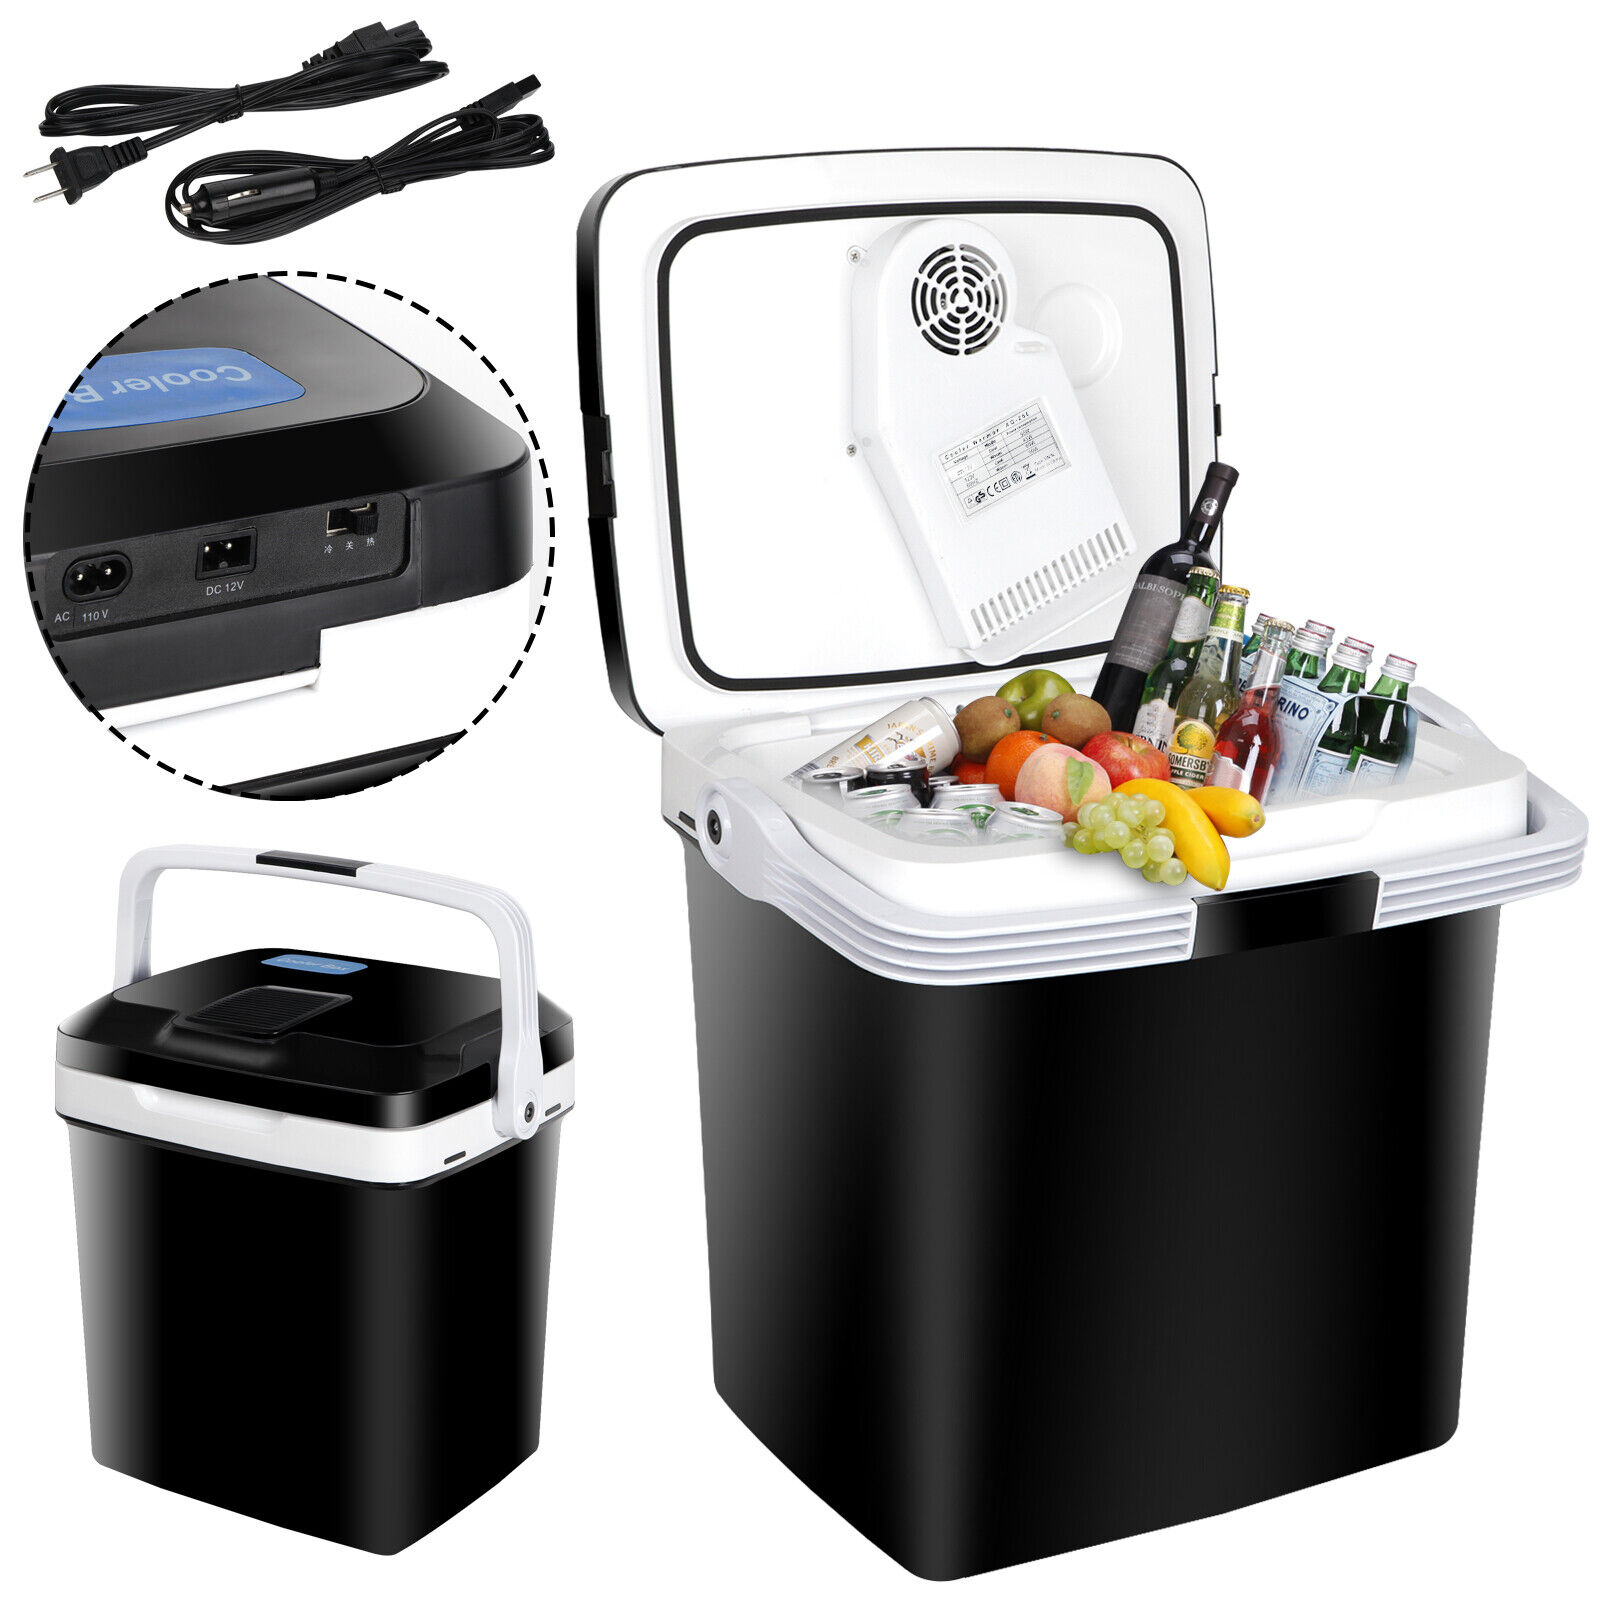 5.7Gal Car Iceless Thermoelectric Cooler&Warmer Travel Fridge For BBQ Camping12V Camping & Hiking